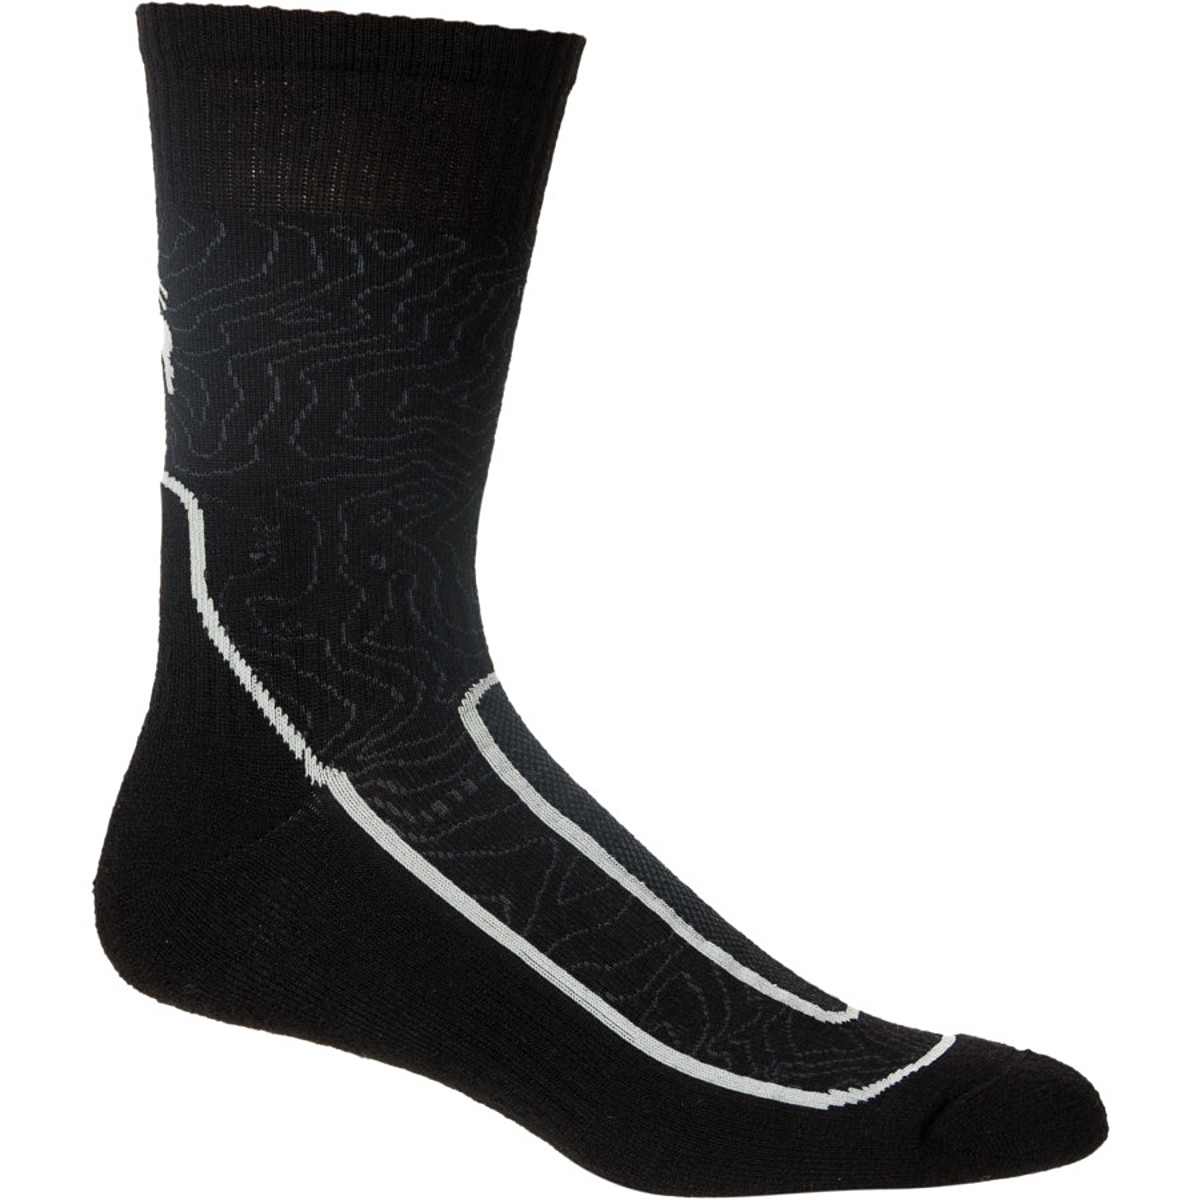 Backcountry.com Topo Merino Comp Hiking Sock